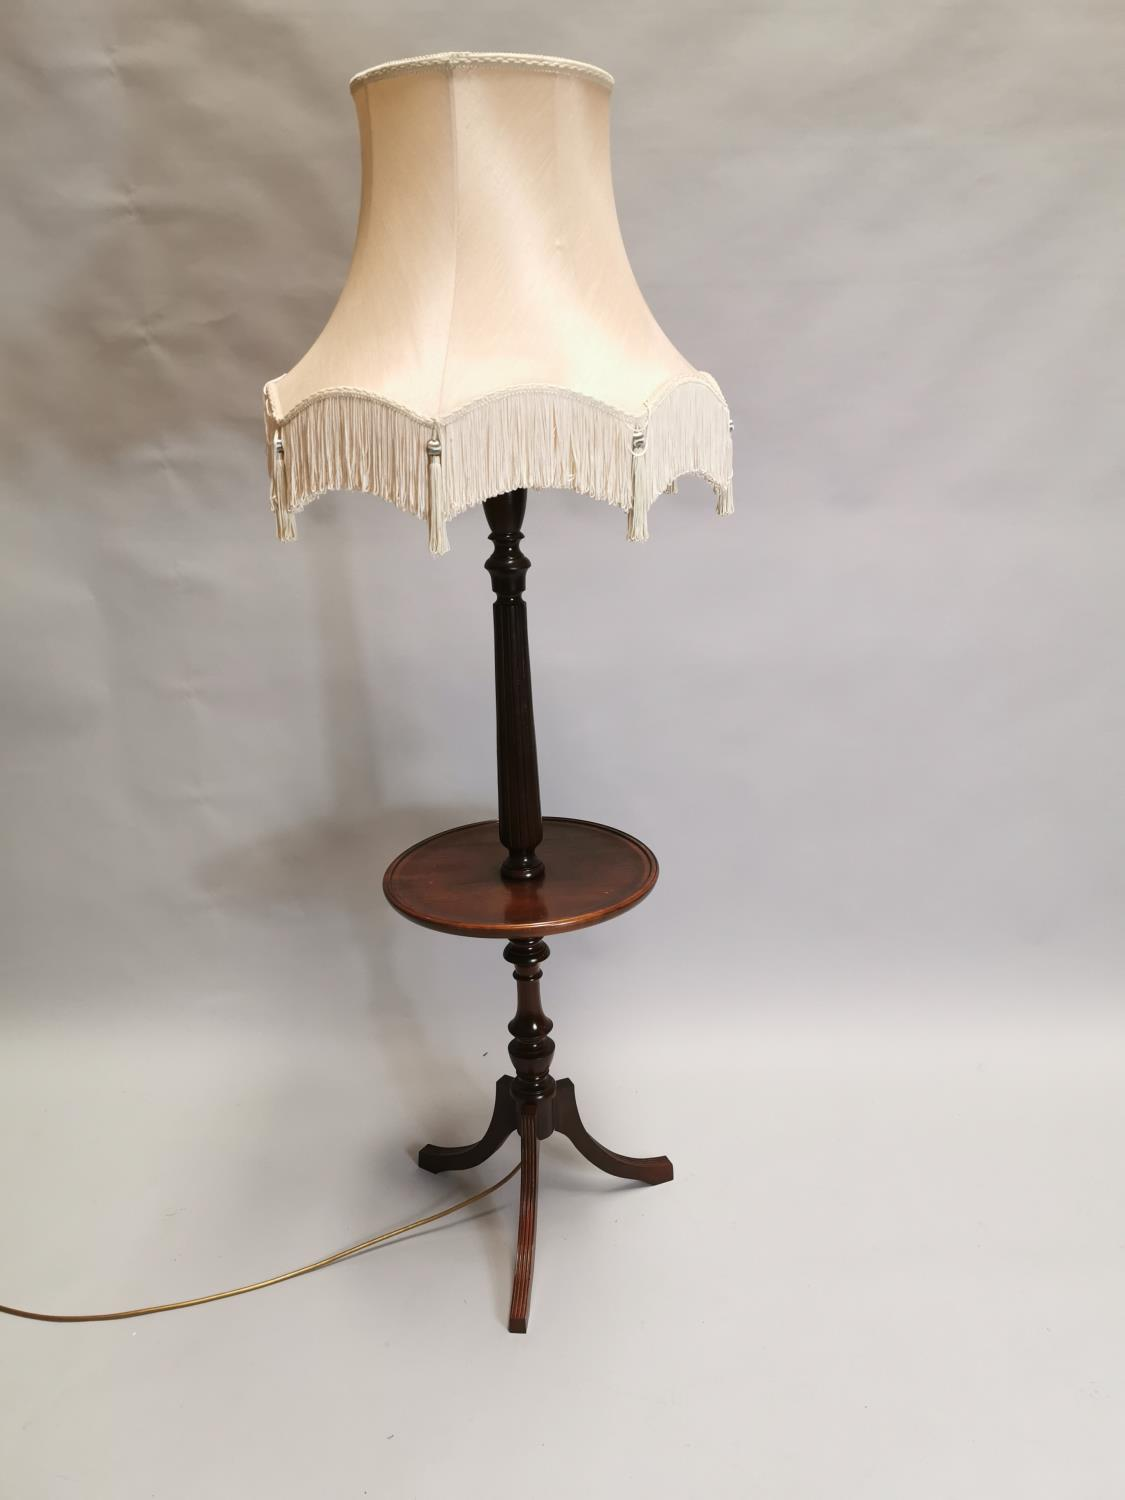 Mahogany standard lamp in the Edwardian style 162 cm H x 62 cm Dia